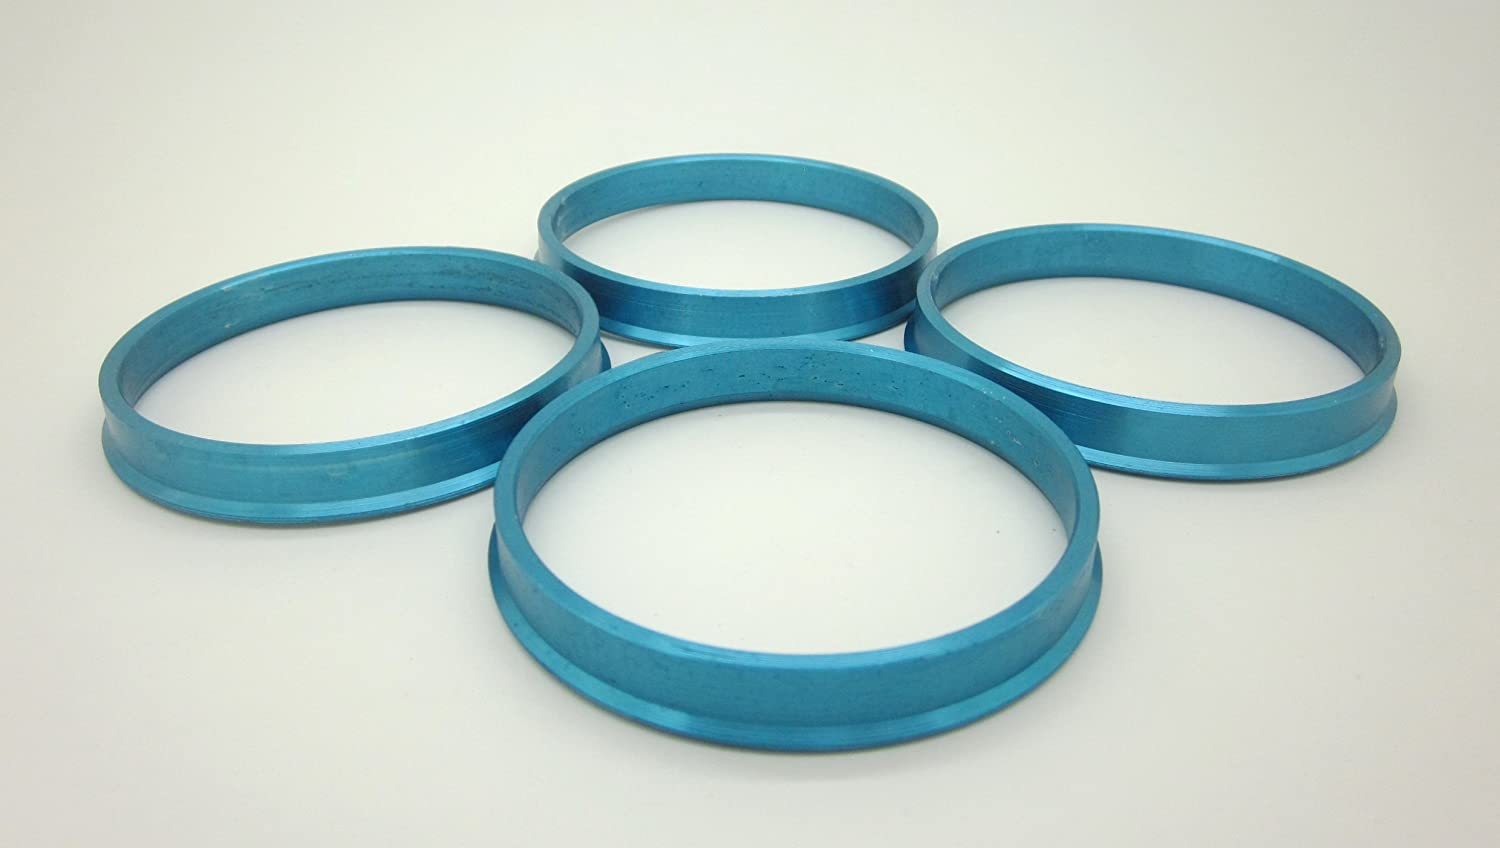 AccuWheel ACHR73-5615M Aluminum Wheel Hub Centric Rings 73.00mm OD to 56.15mm ID Pack of 4 Hubrings